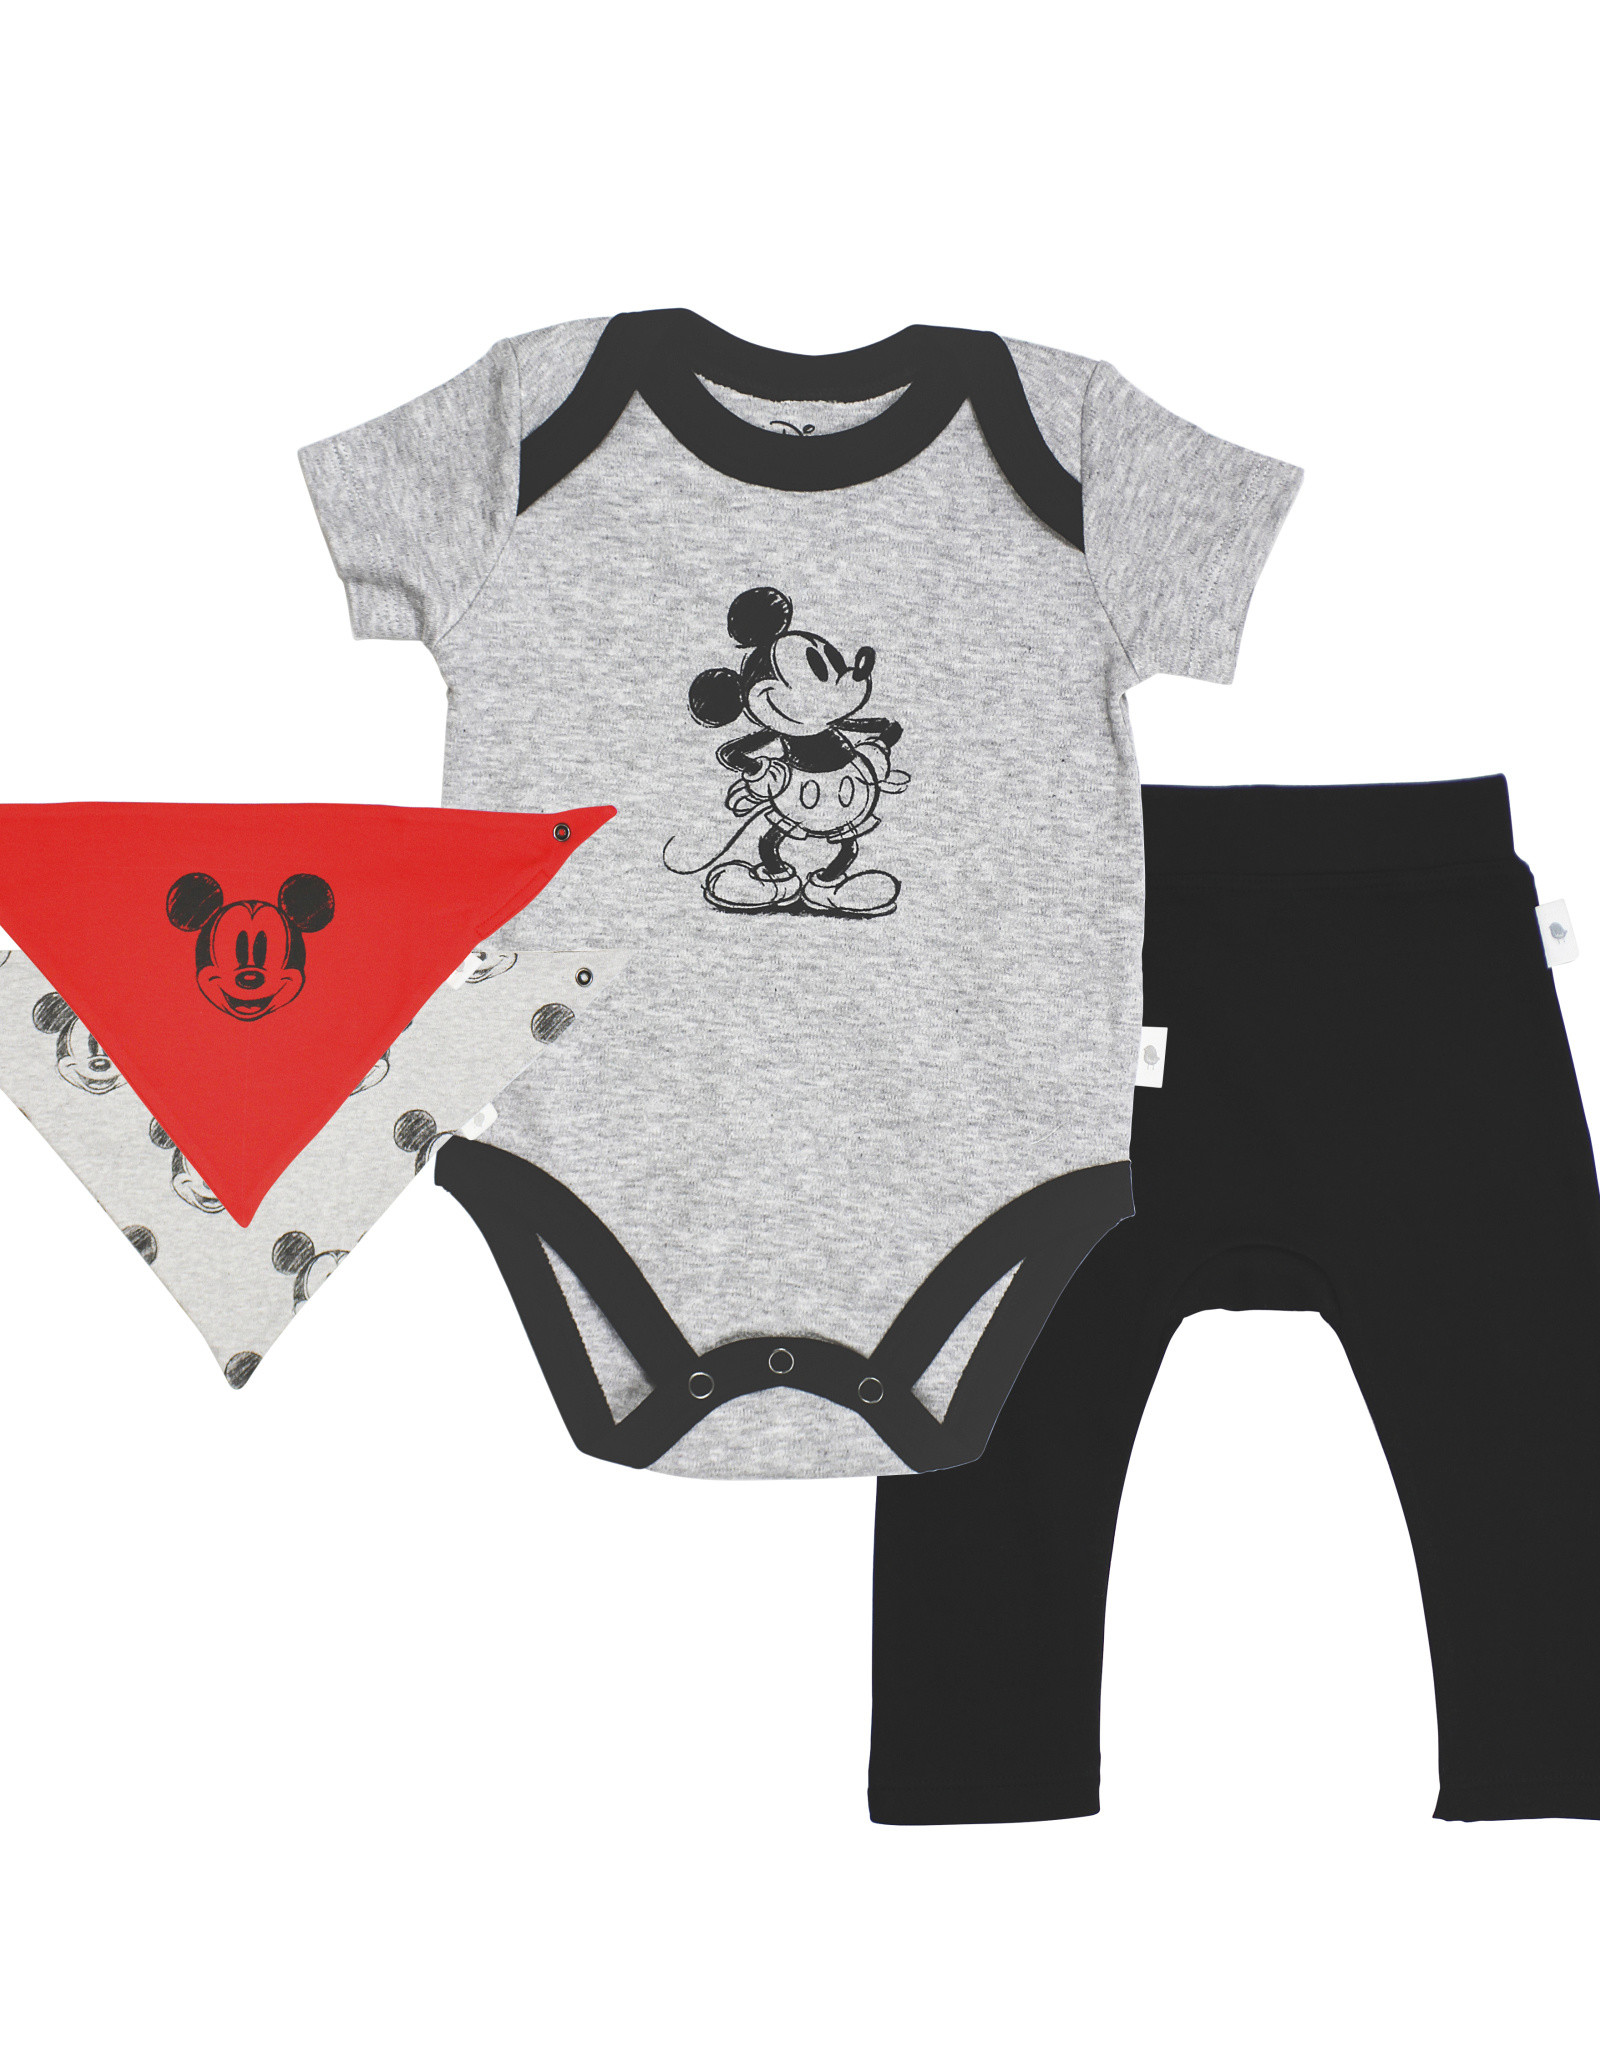 Finn & Emma Disney Bodysuit, Pants, & Bib Set Mickey Mouse 3-6m